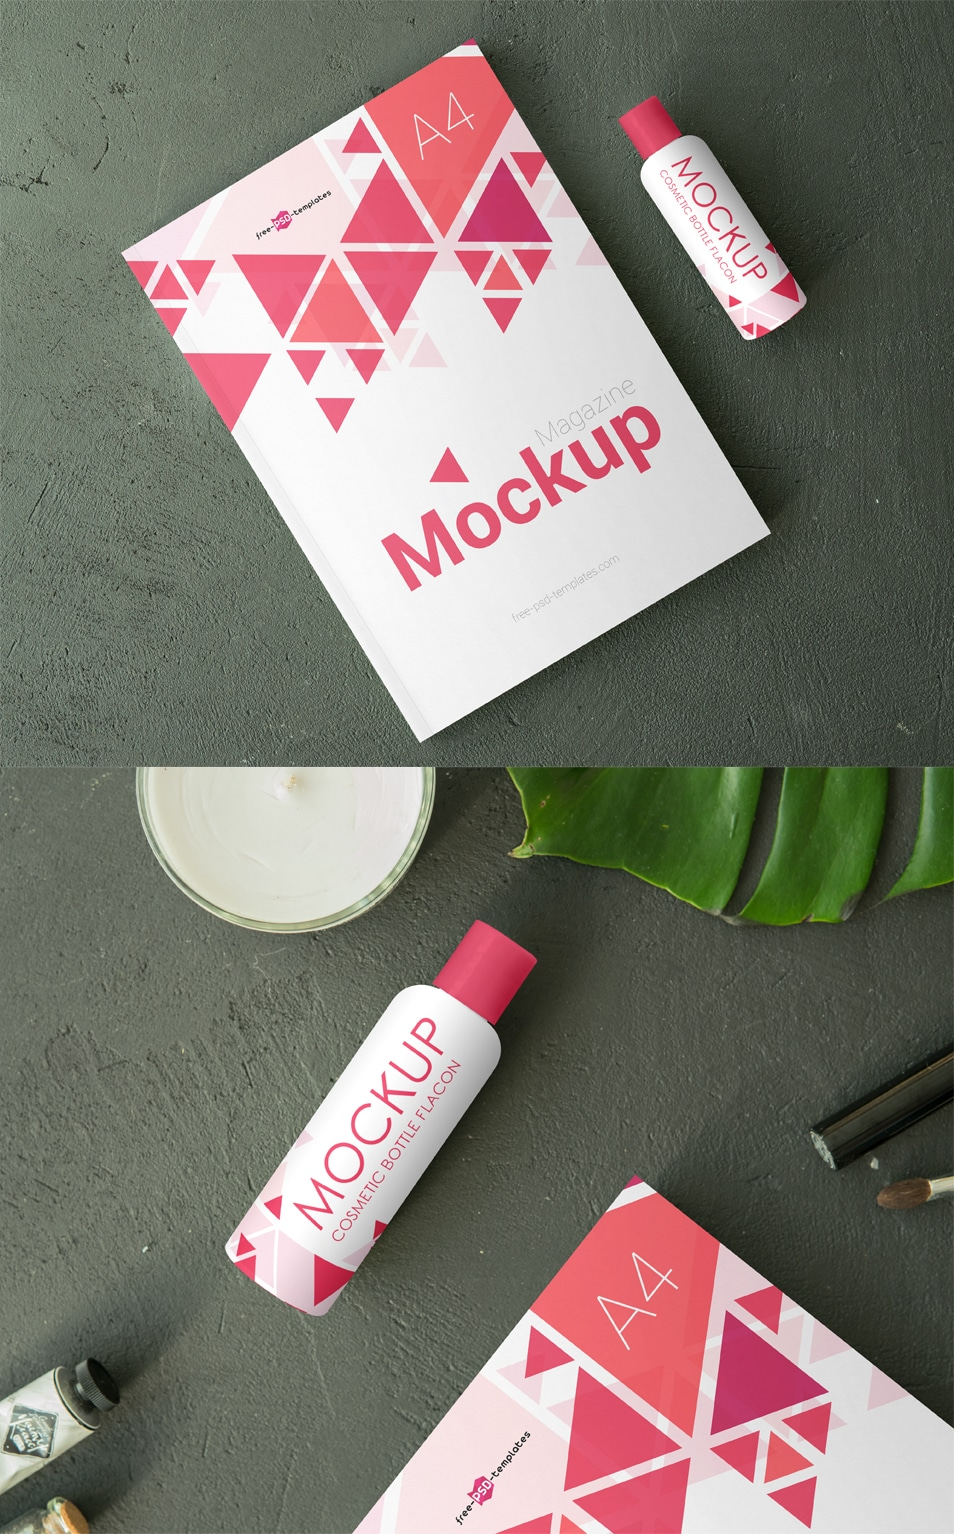 2 Free Cosmetic Bottle Flacon Mock-ups in PSD